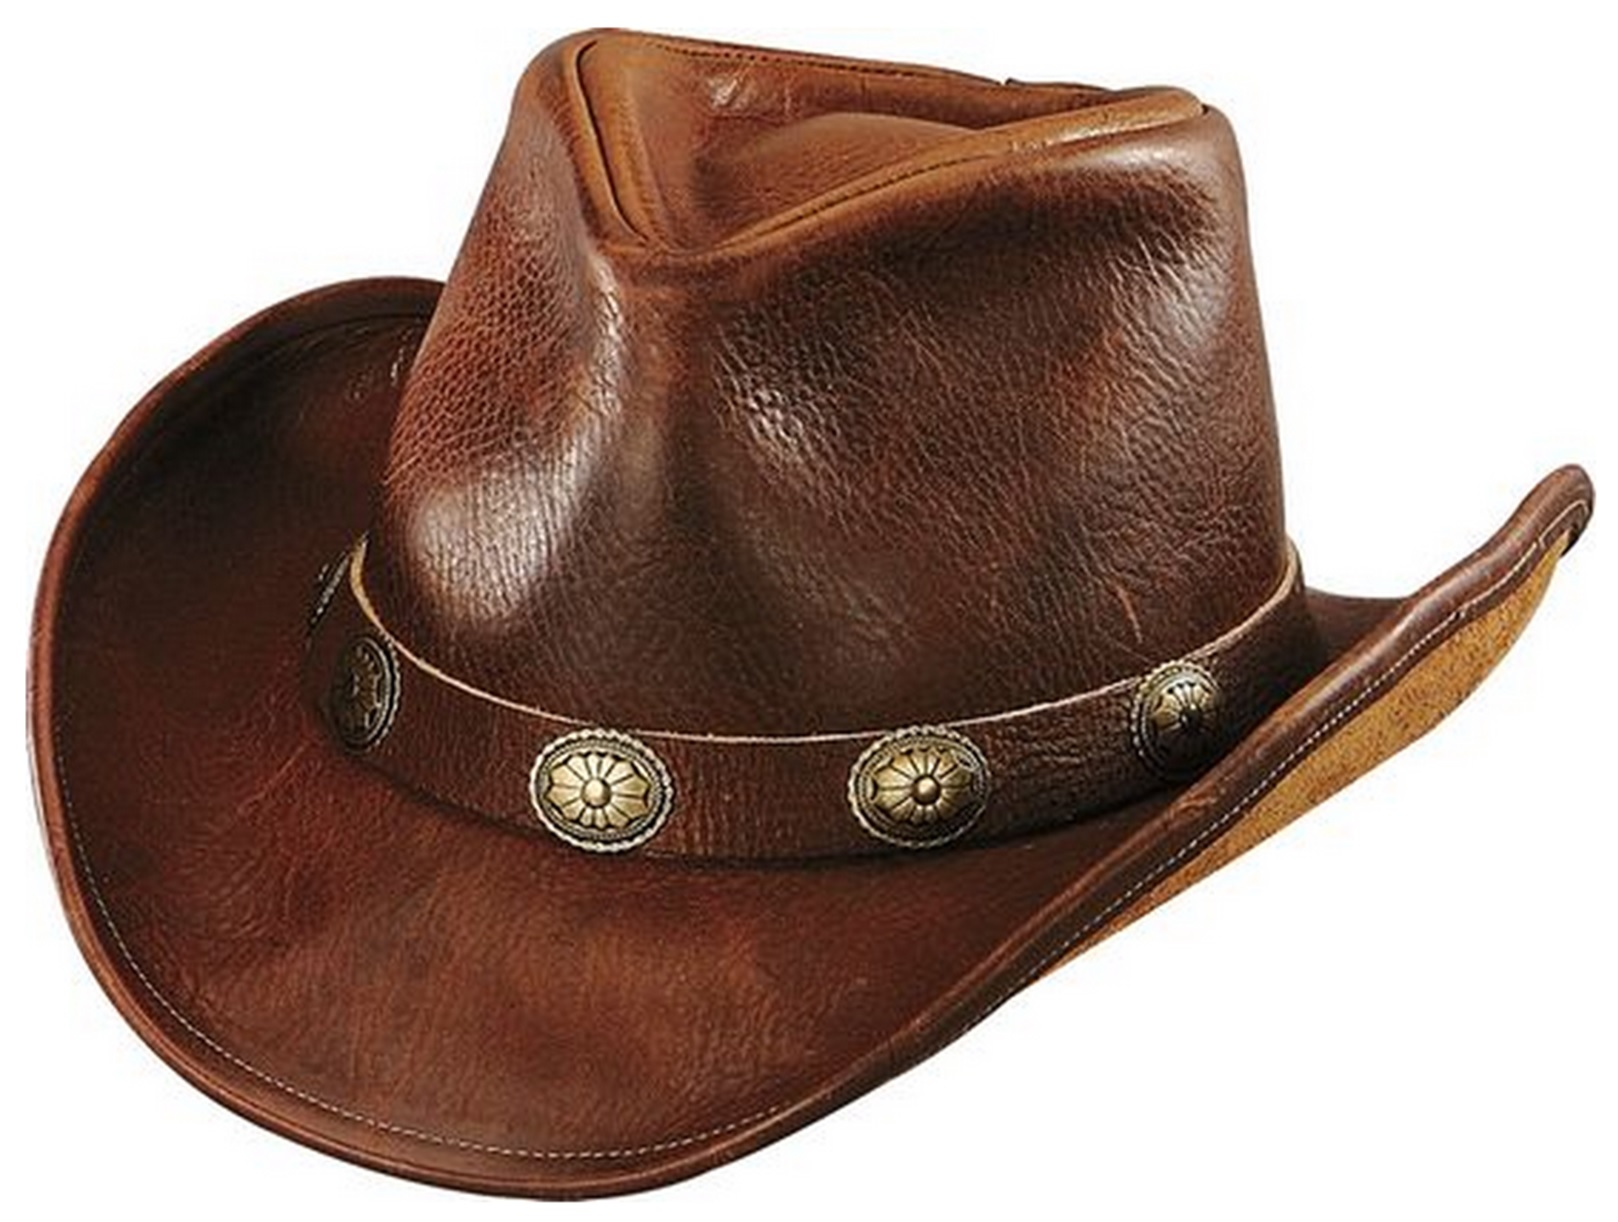 William Brazel's Cowboy Hat